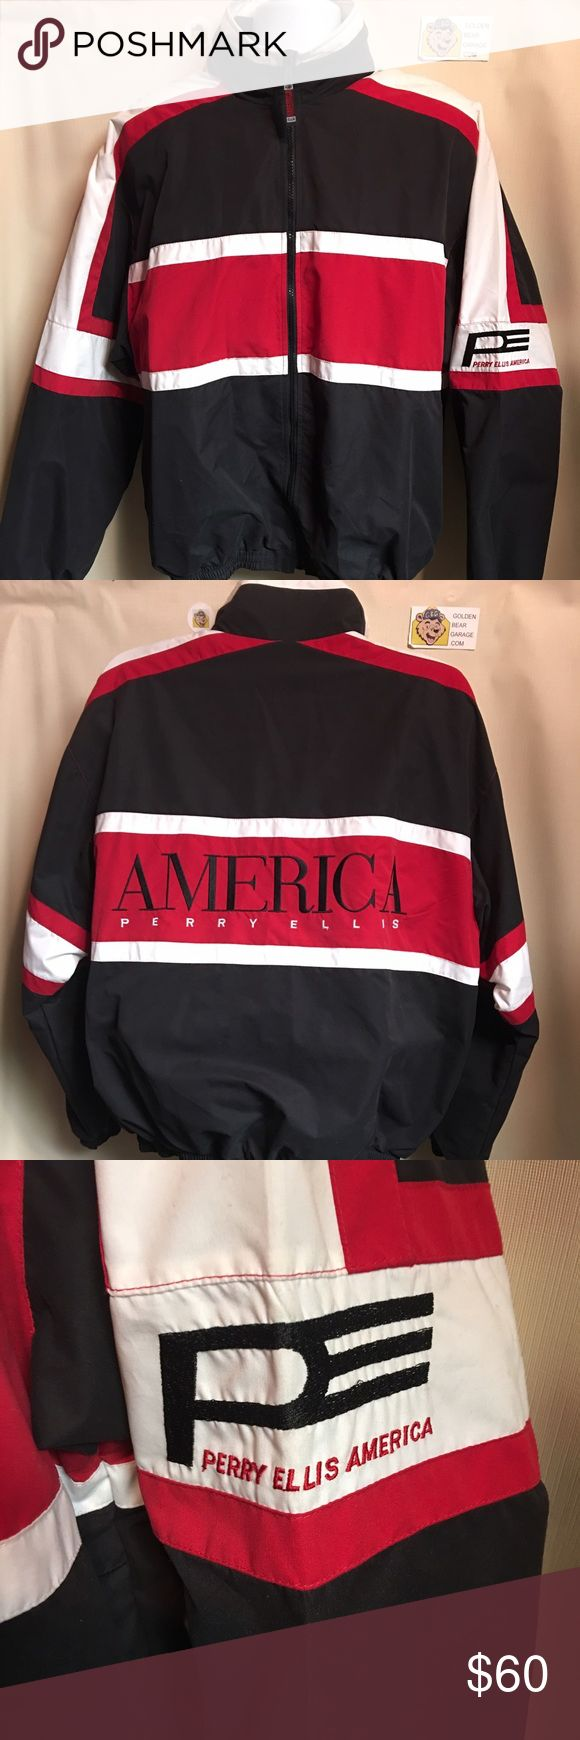 Vintage Perry Ellis America Men's Large Jacket Gently Worn Men's Large Vintage Perry Ellis America Jacket. In great condition with no major flaws. This jacket takes you back to the hip hop 90's. Perry Ellis Jackets & Coats Windbreakers